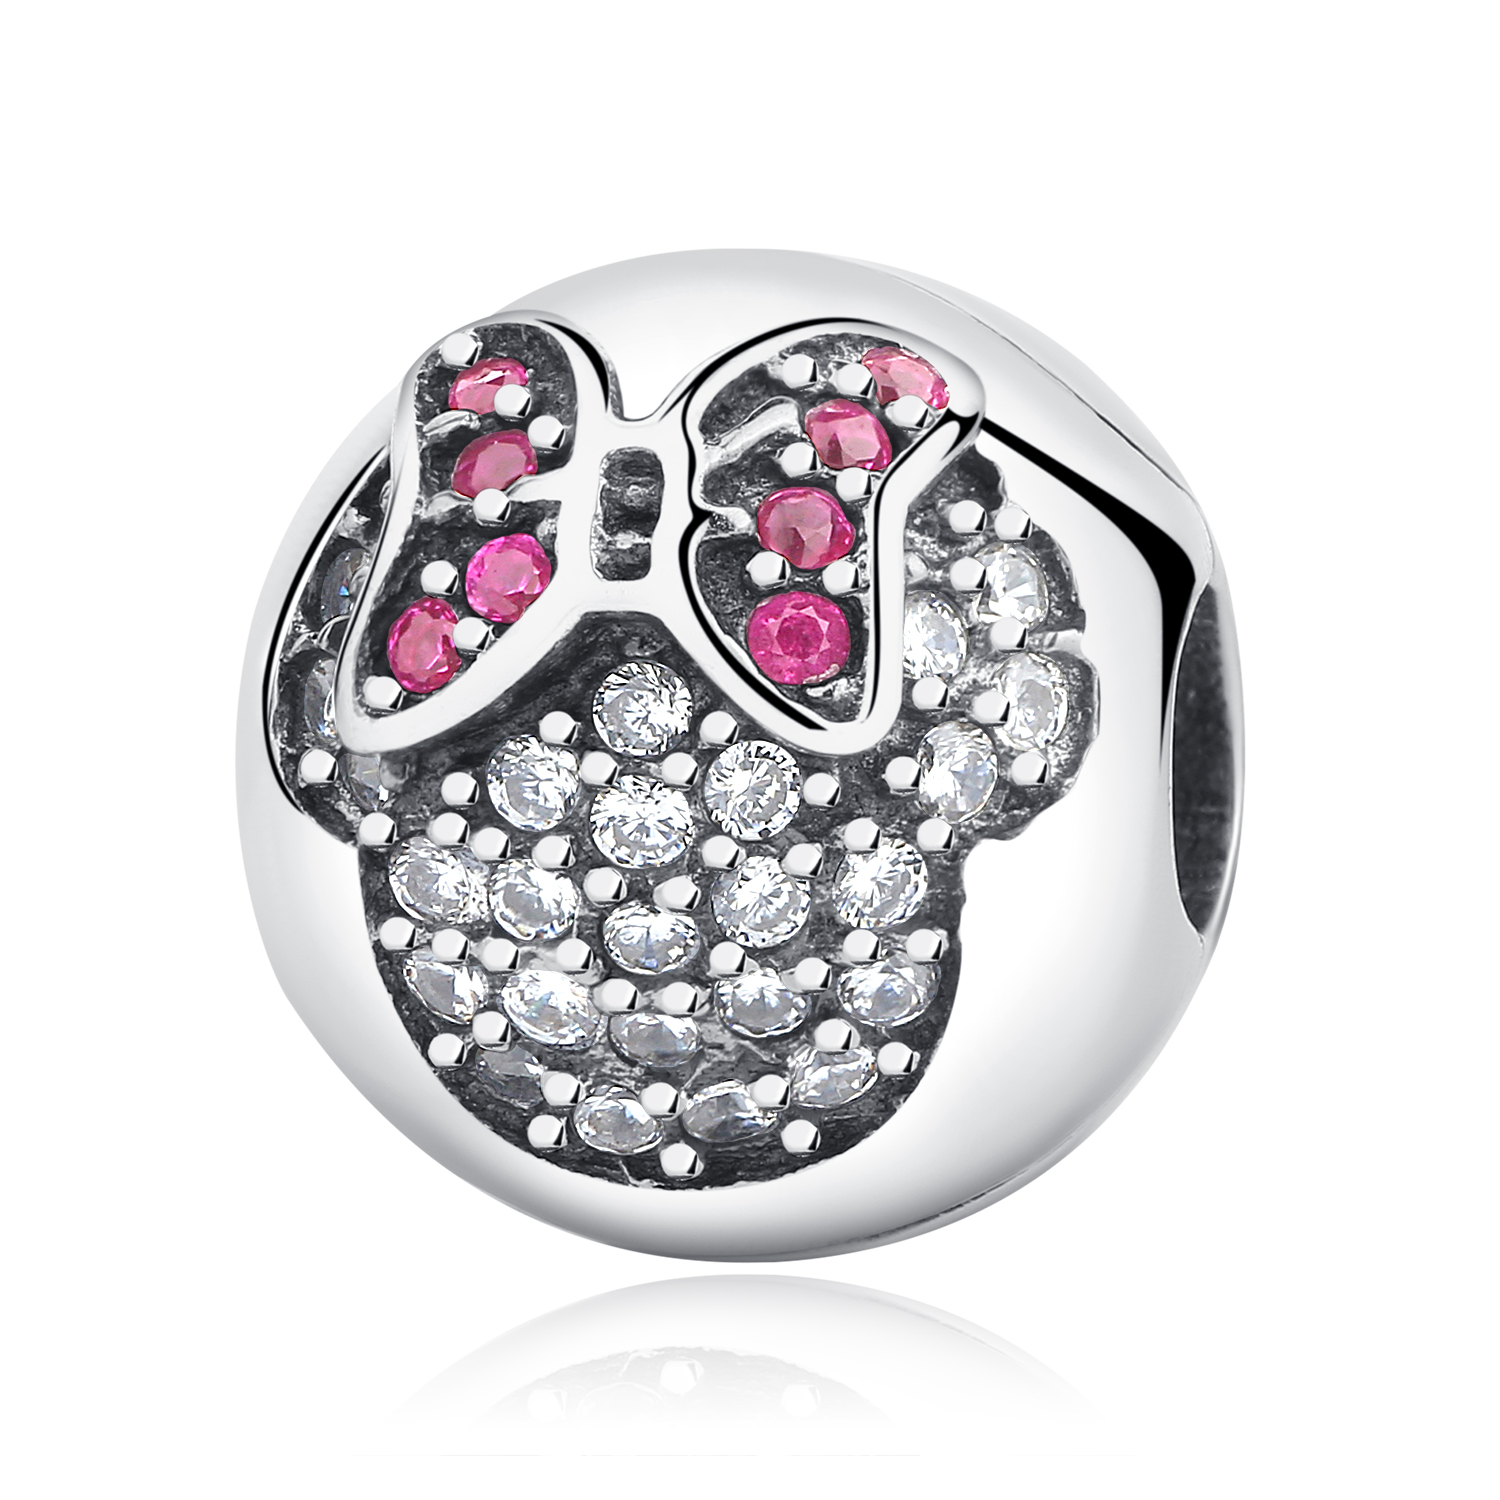 Real 925 Sterling Silver 2018 Aliexpress Hot Sale Clip Charms Stopper Safety Beads Fit Original Pandora Bracelets DIY Jewelry in Beads from Jewelry